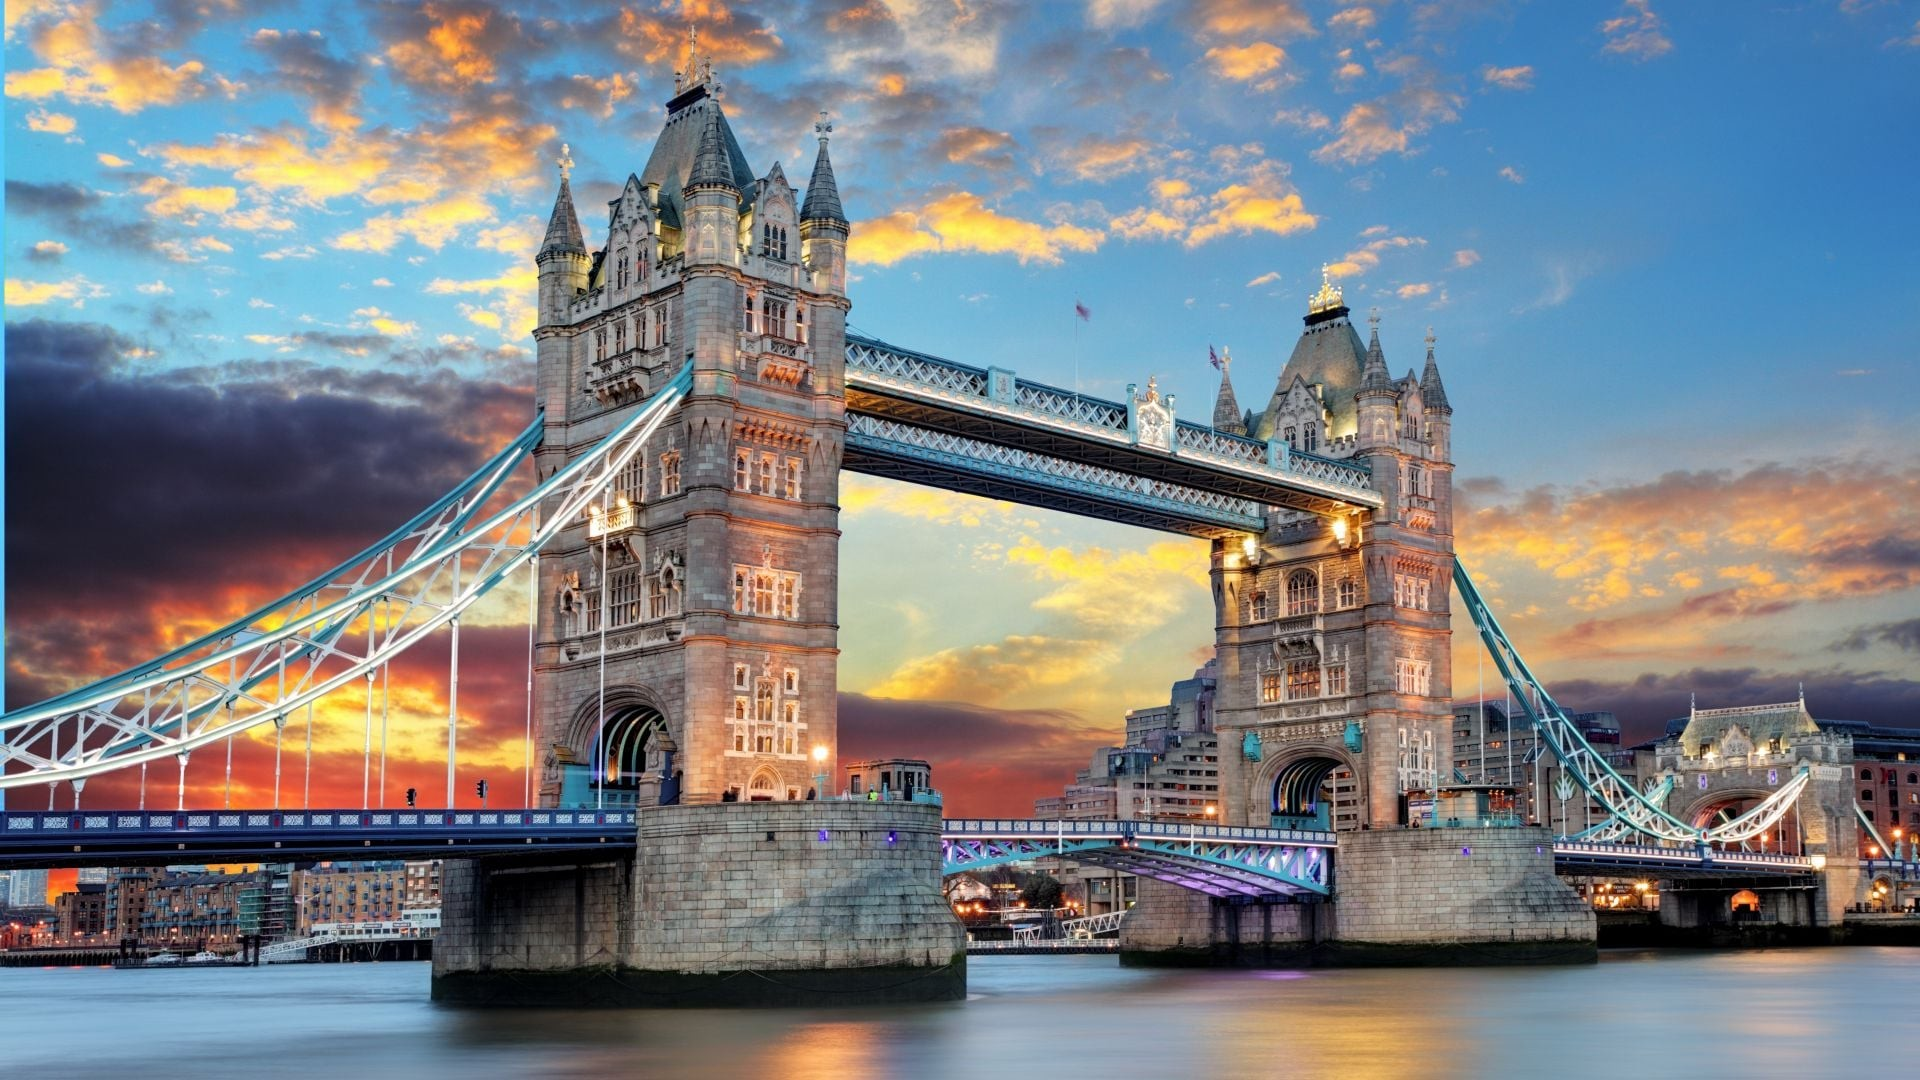 london desktop background, london desktop wallpaper hd